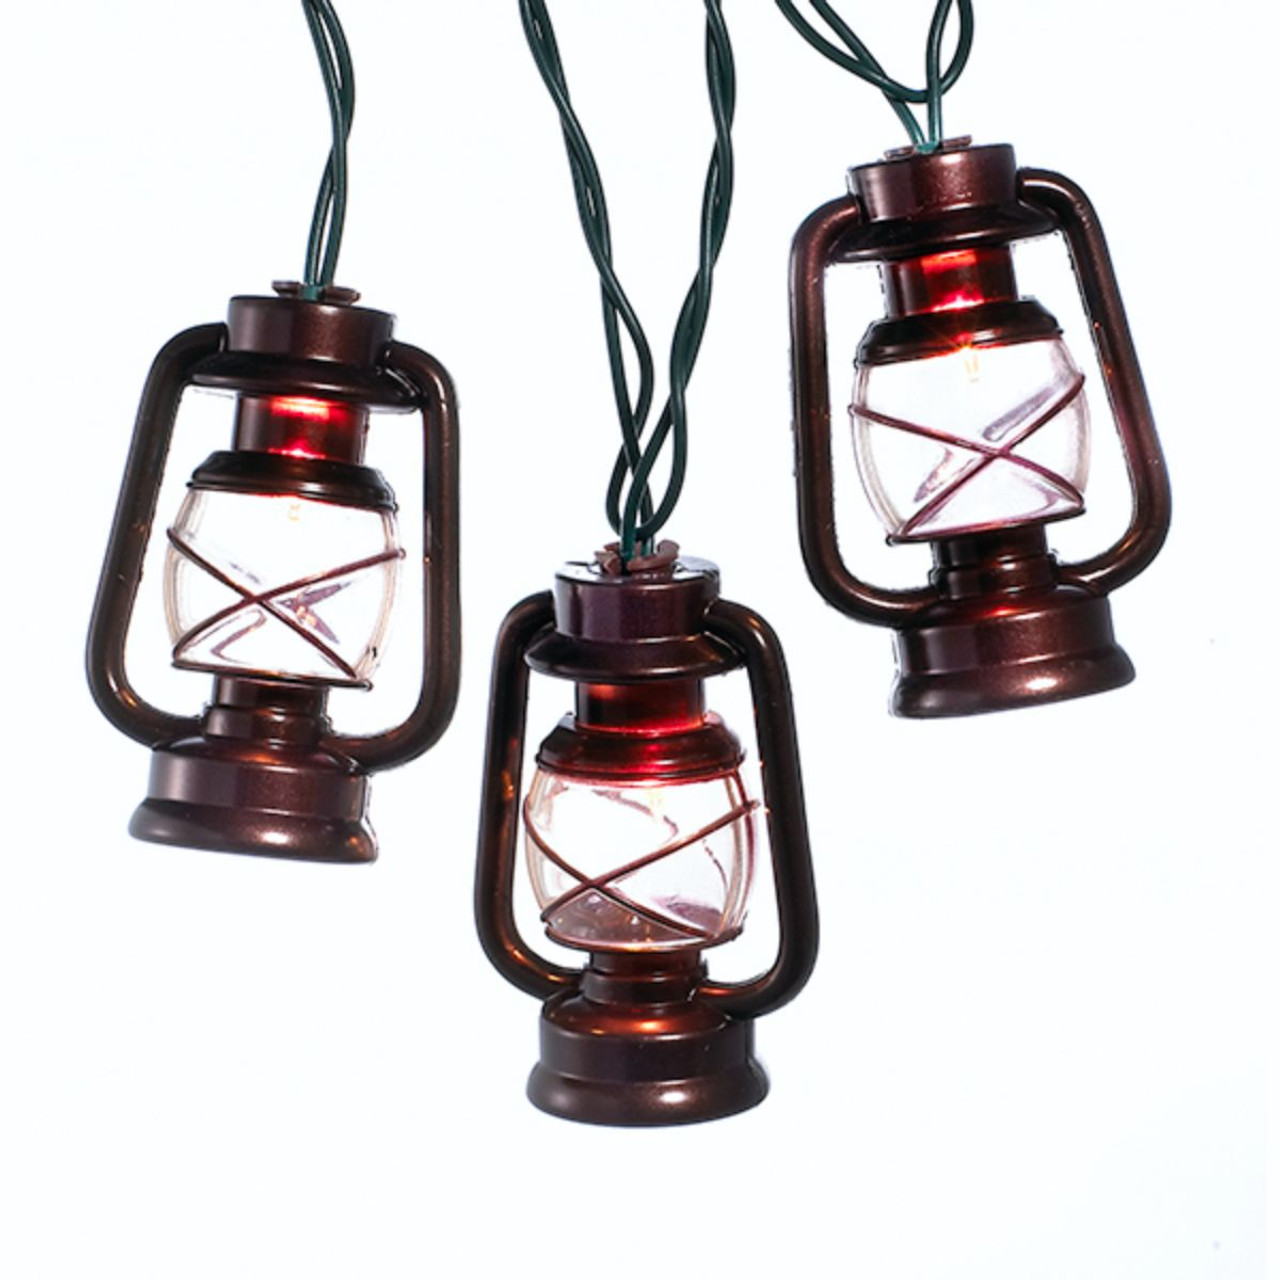 Set of 10 Brass Lantern Novelty Christmas Lights - Green Wire ...